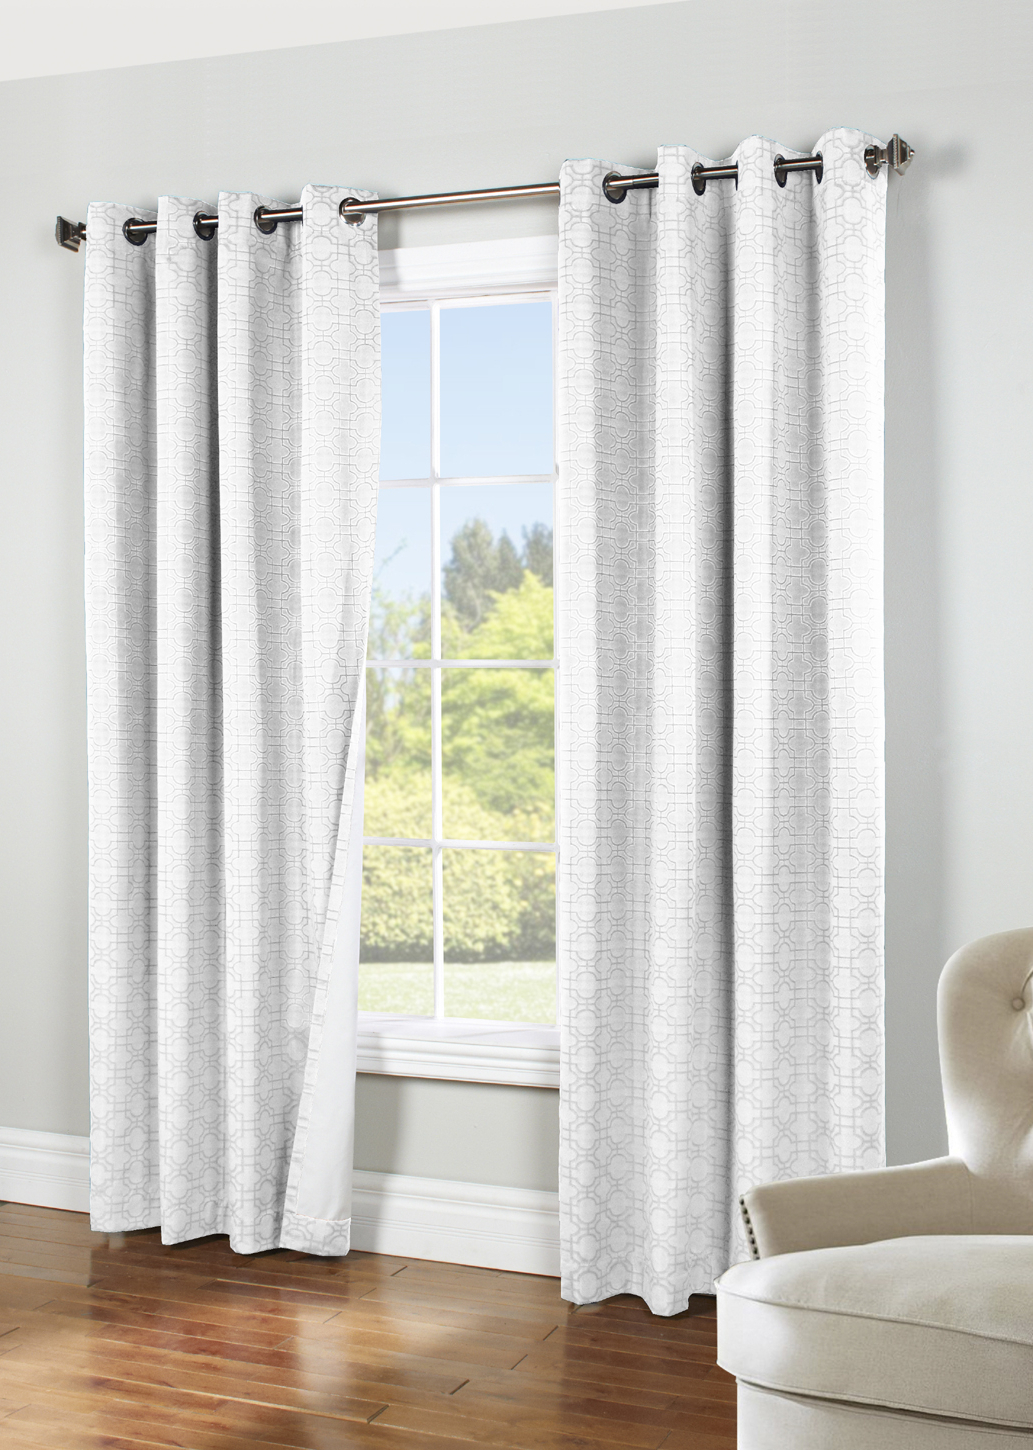 2020 Irongate Insulated Blackout Grommet Curtain Panel – Thermaplus With Regard To Insulated Blackout Grommet Window Curtain Panel Pairs (View 11 of 20)